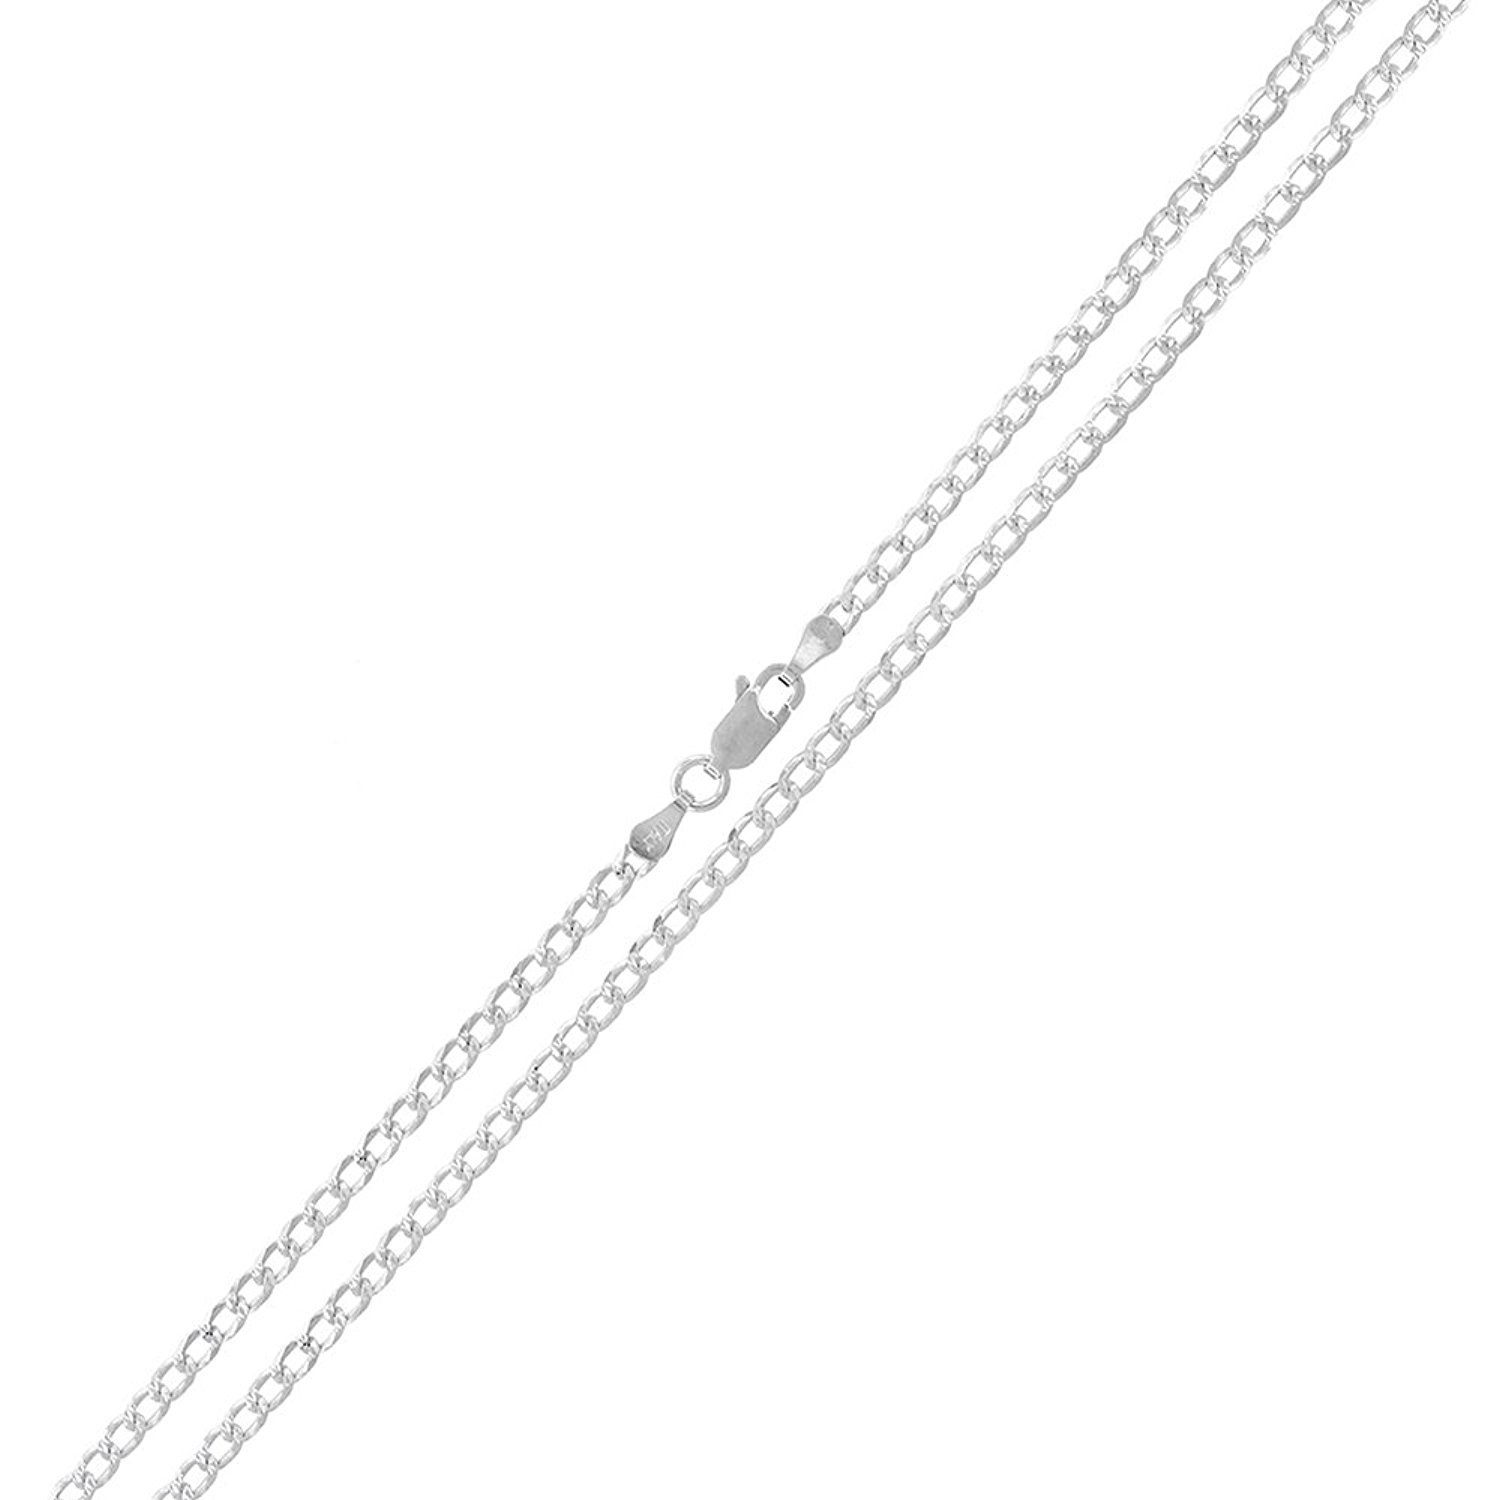 Sterling Silver Italian 2mm Cuban Curb Link Diamond-Cut ITProlux Solid 925 Necklace Chain 16'' - 30'' (28)